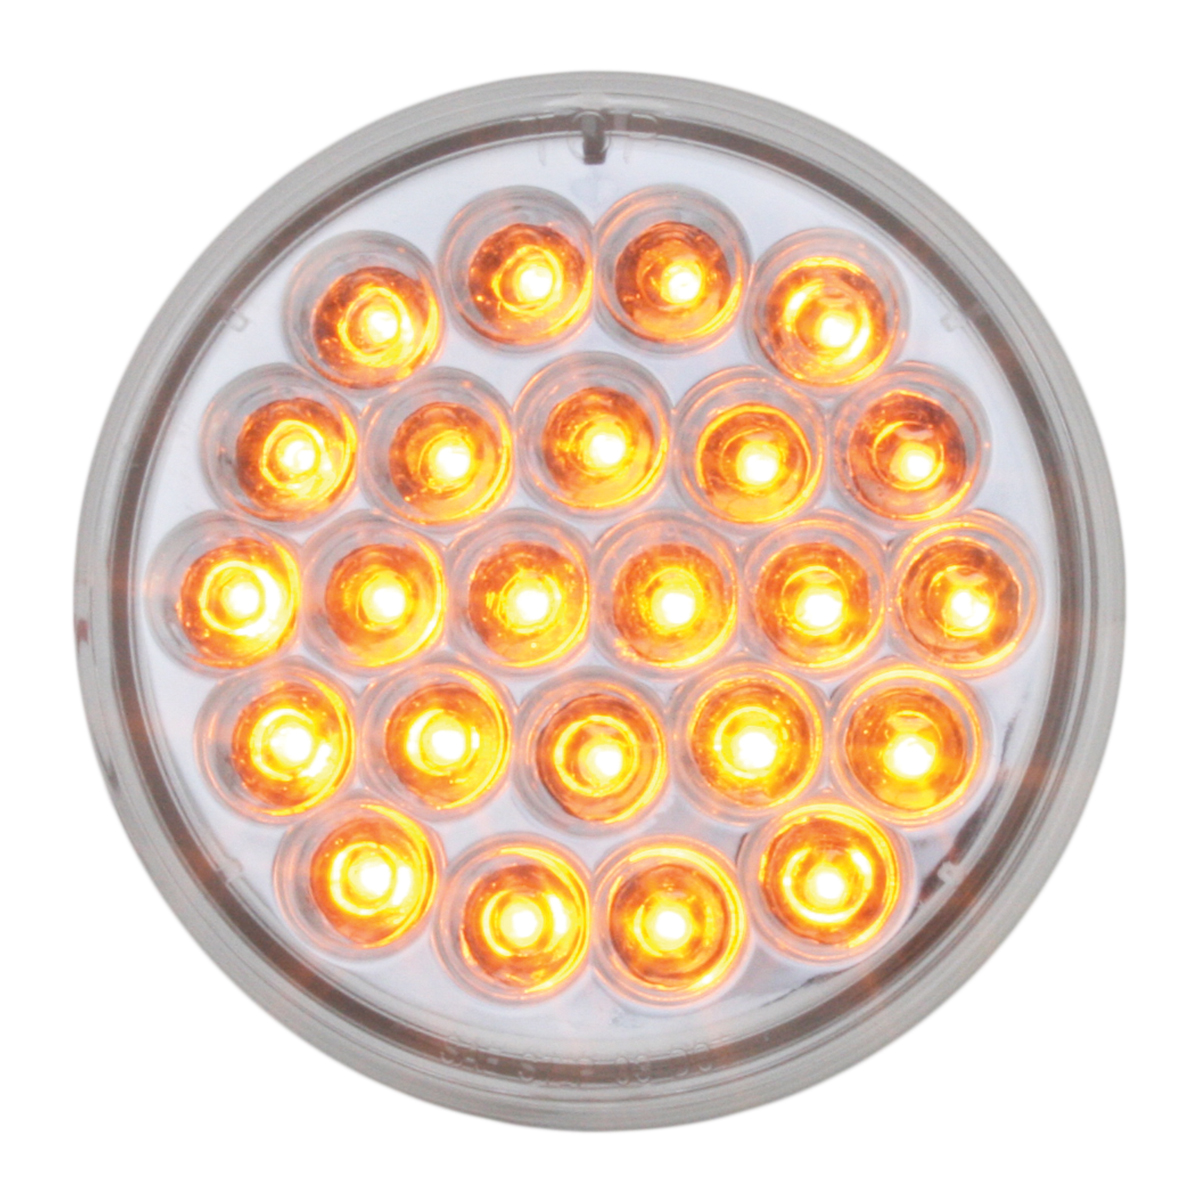 "#78271 4"" Round Pearl LED Amber/Clear Light"